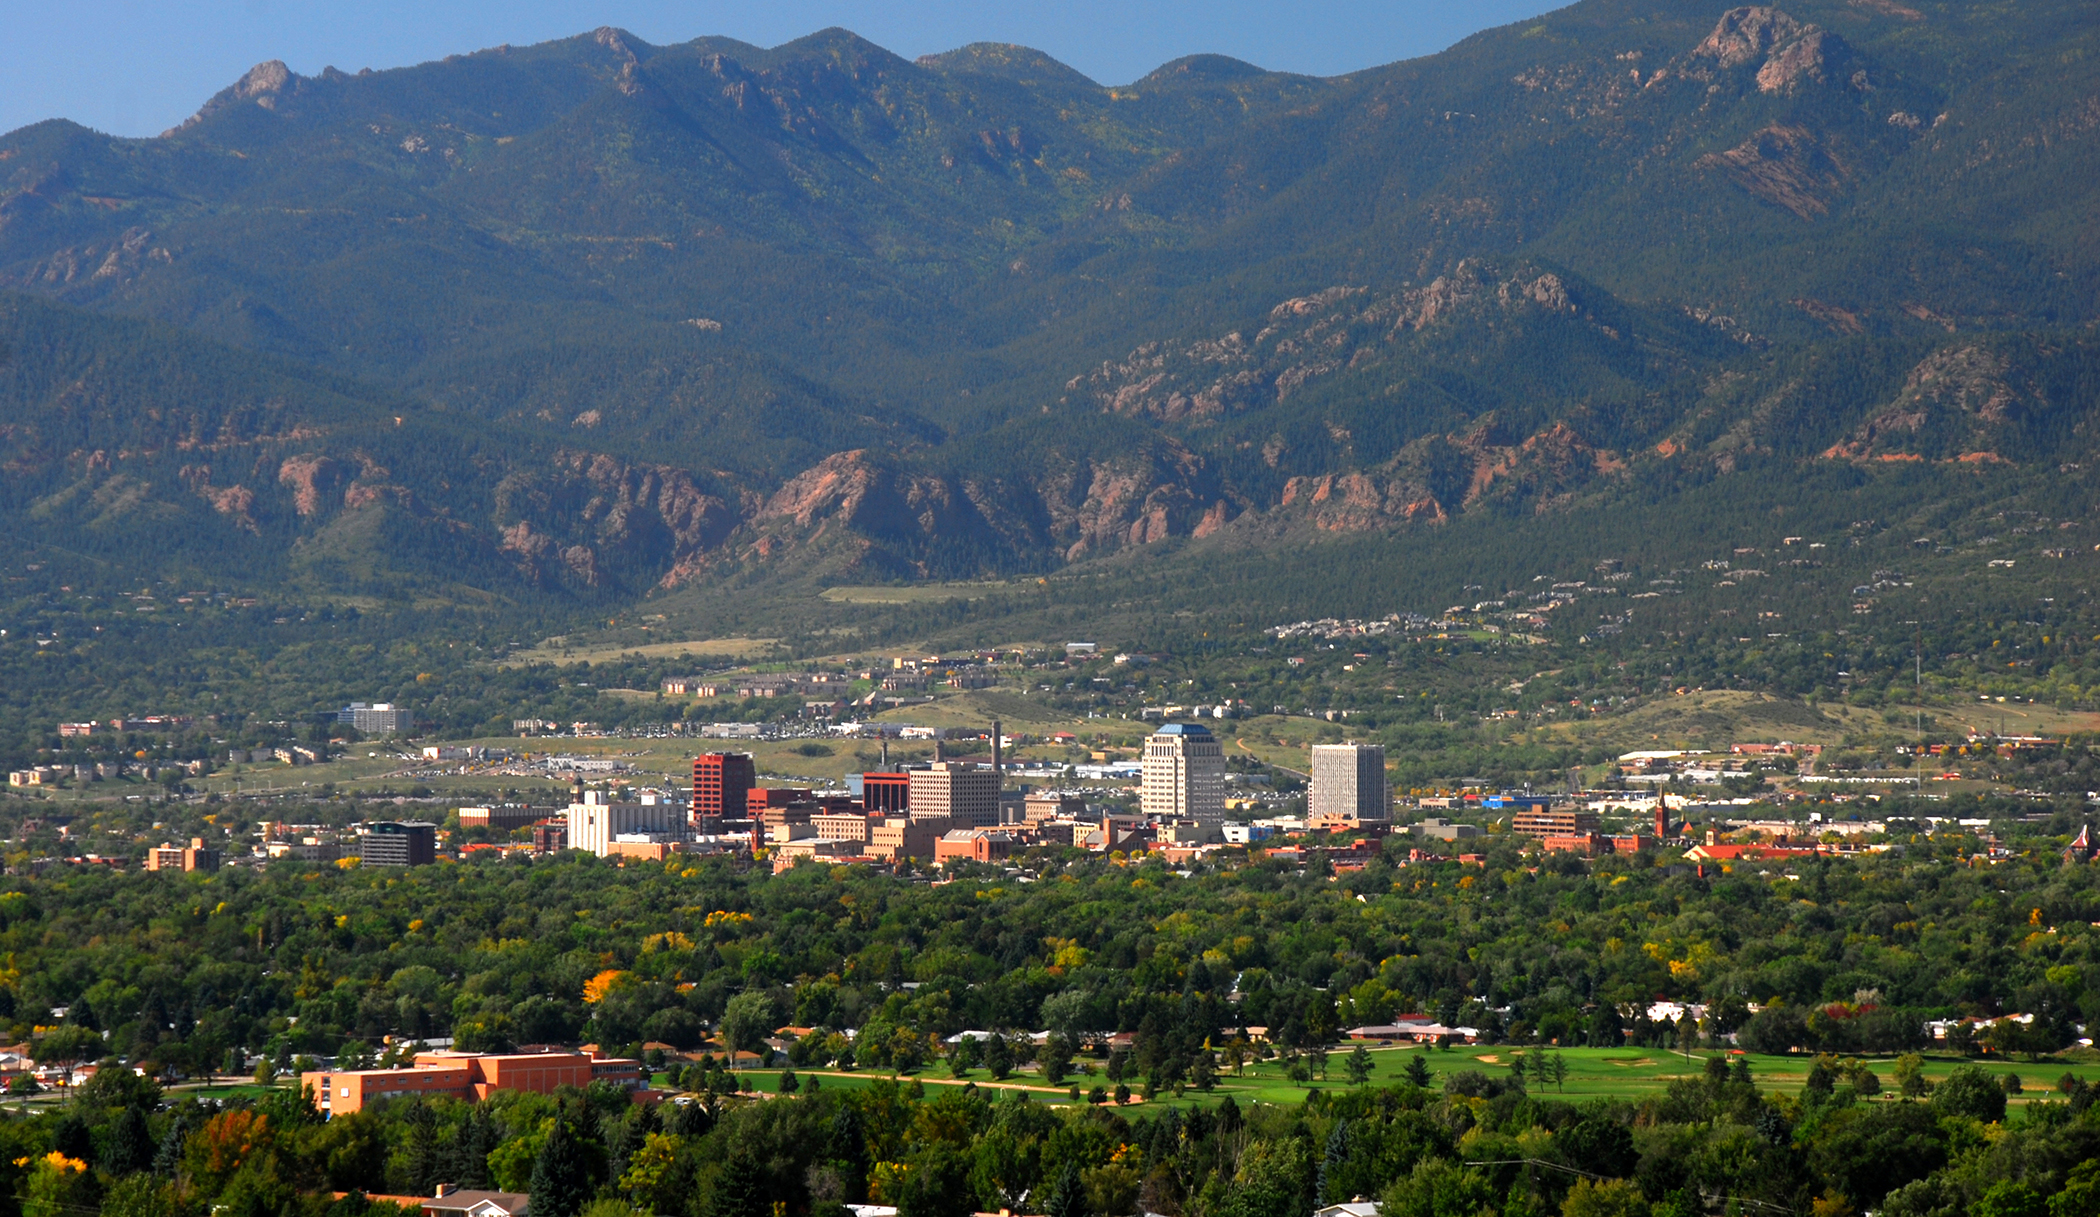 Downtown Colorado Springs, Colorado as seen from Palmer Park, set against the front range of the Majestic Rocky Mountains.